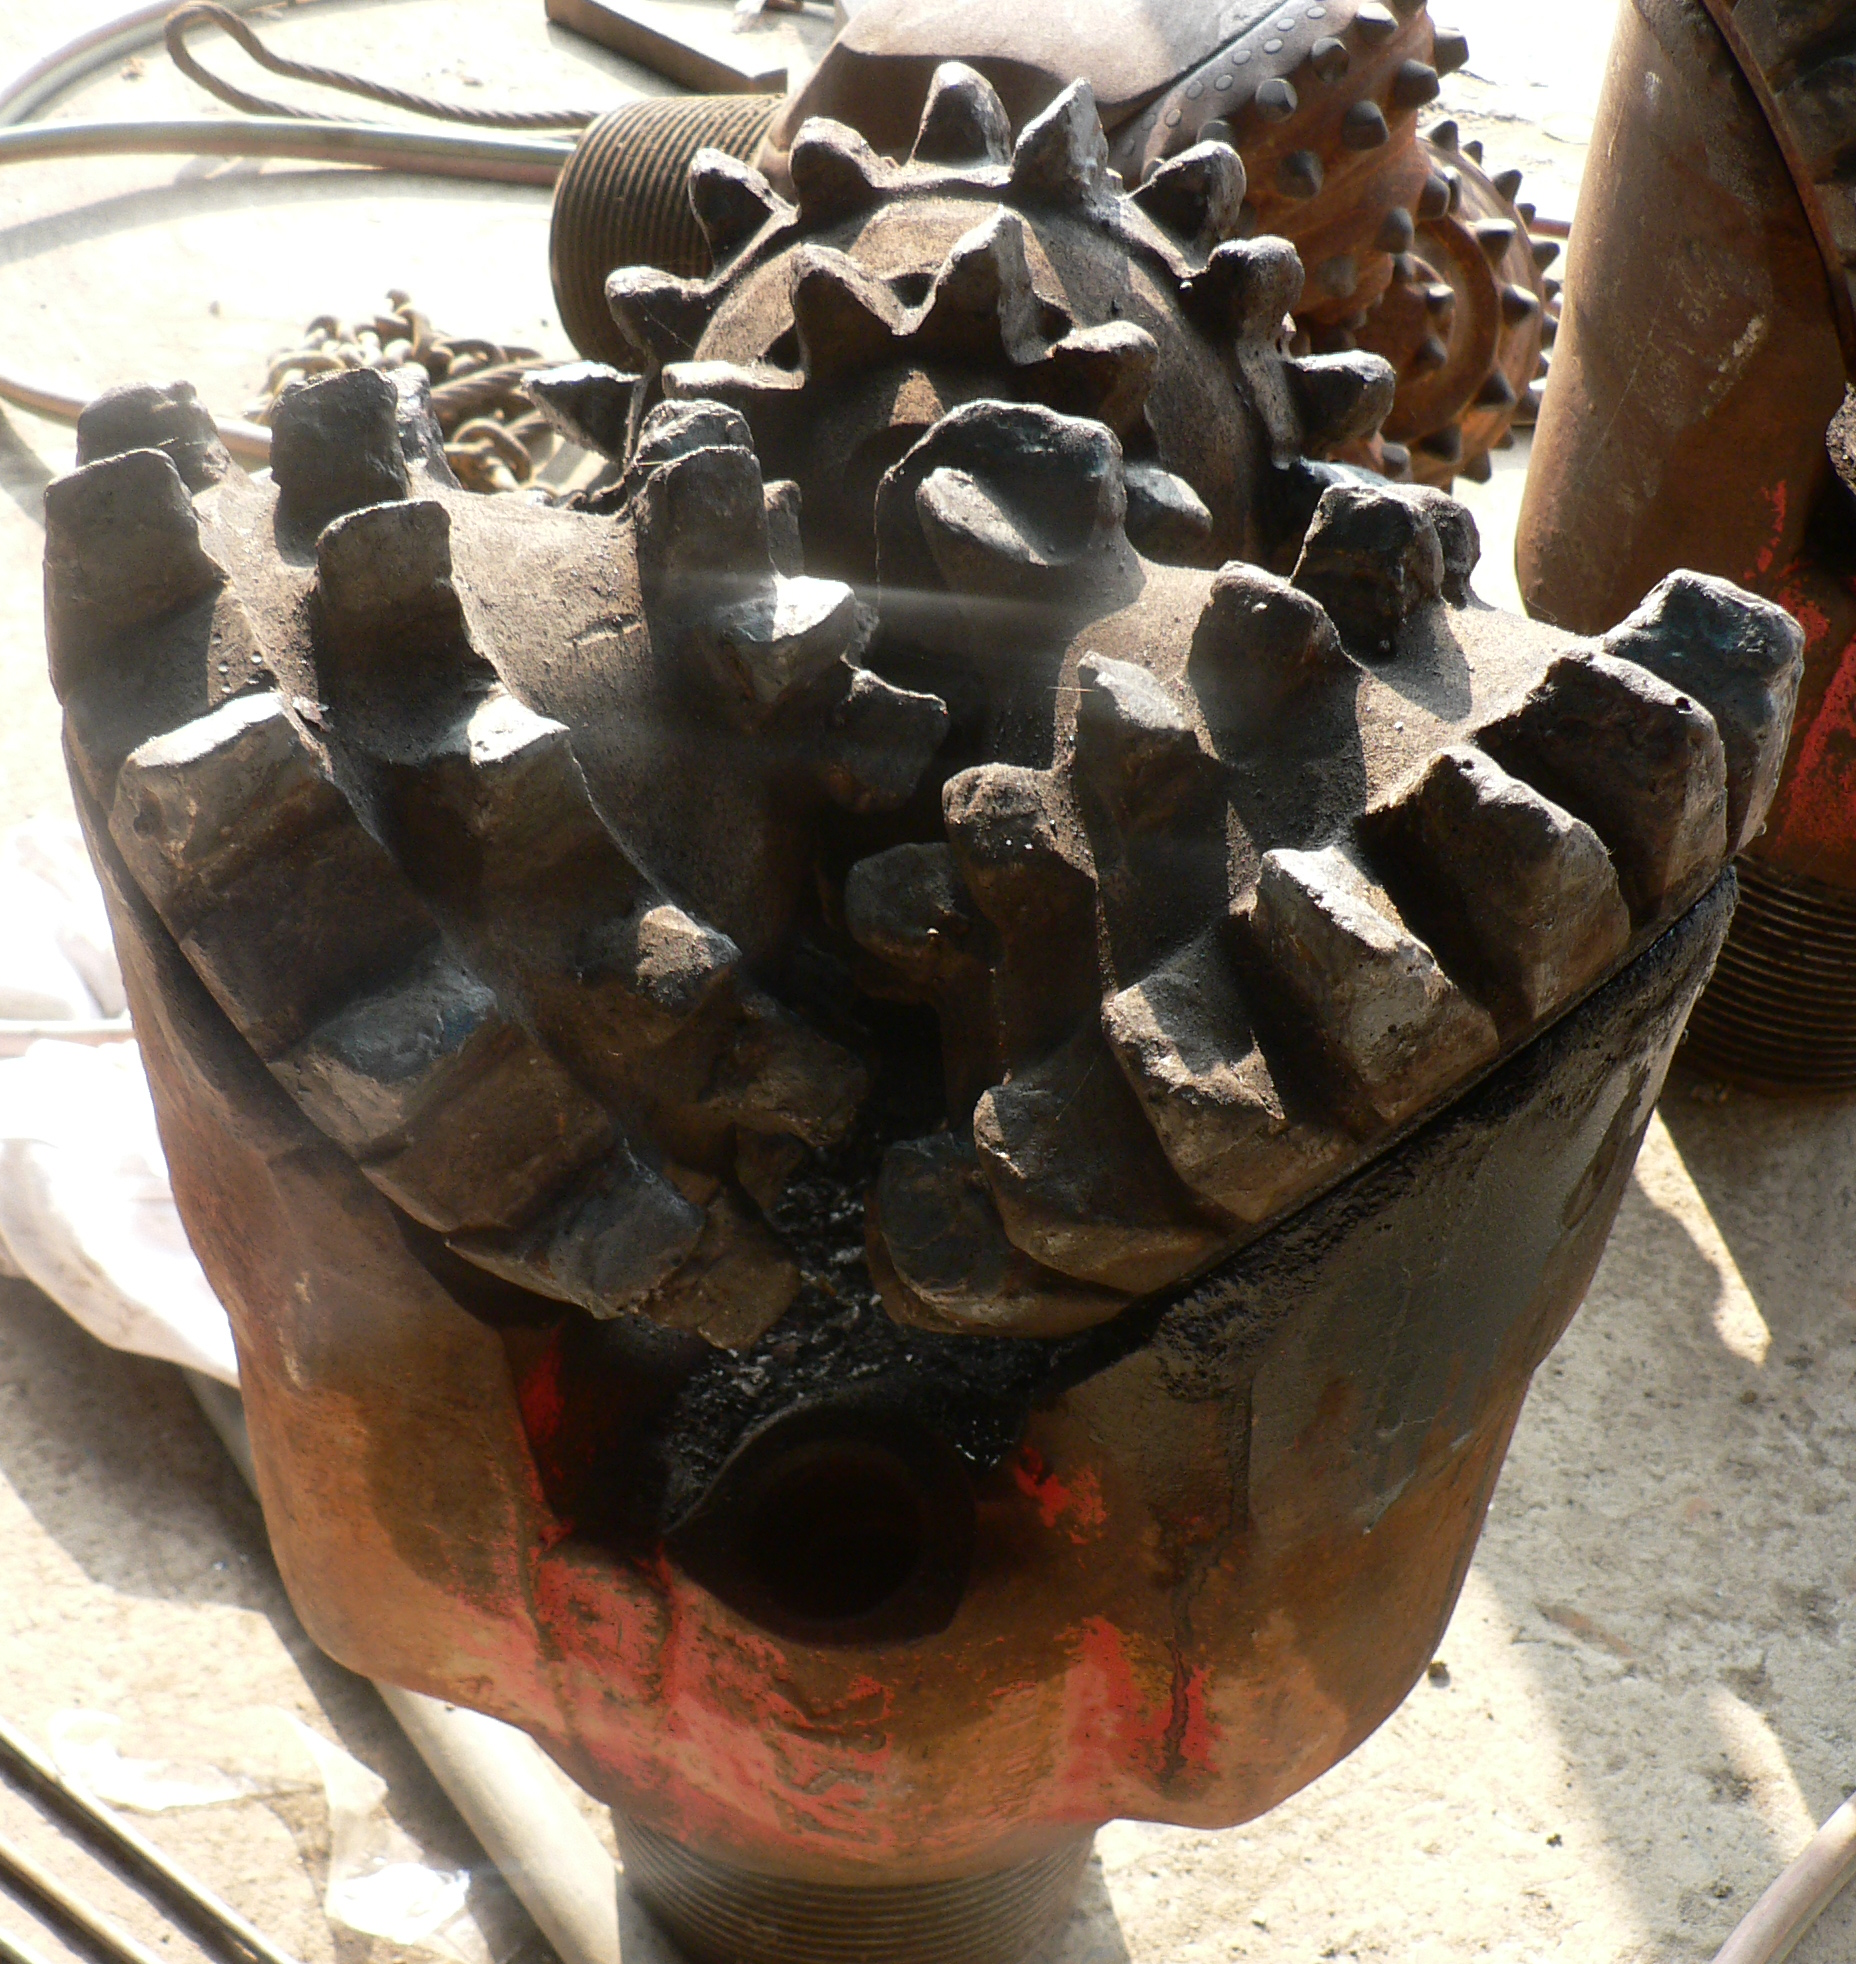 File:Drill bit p1110093.jpg - Wikimedia Commons